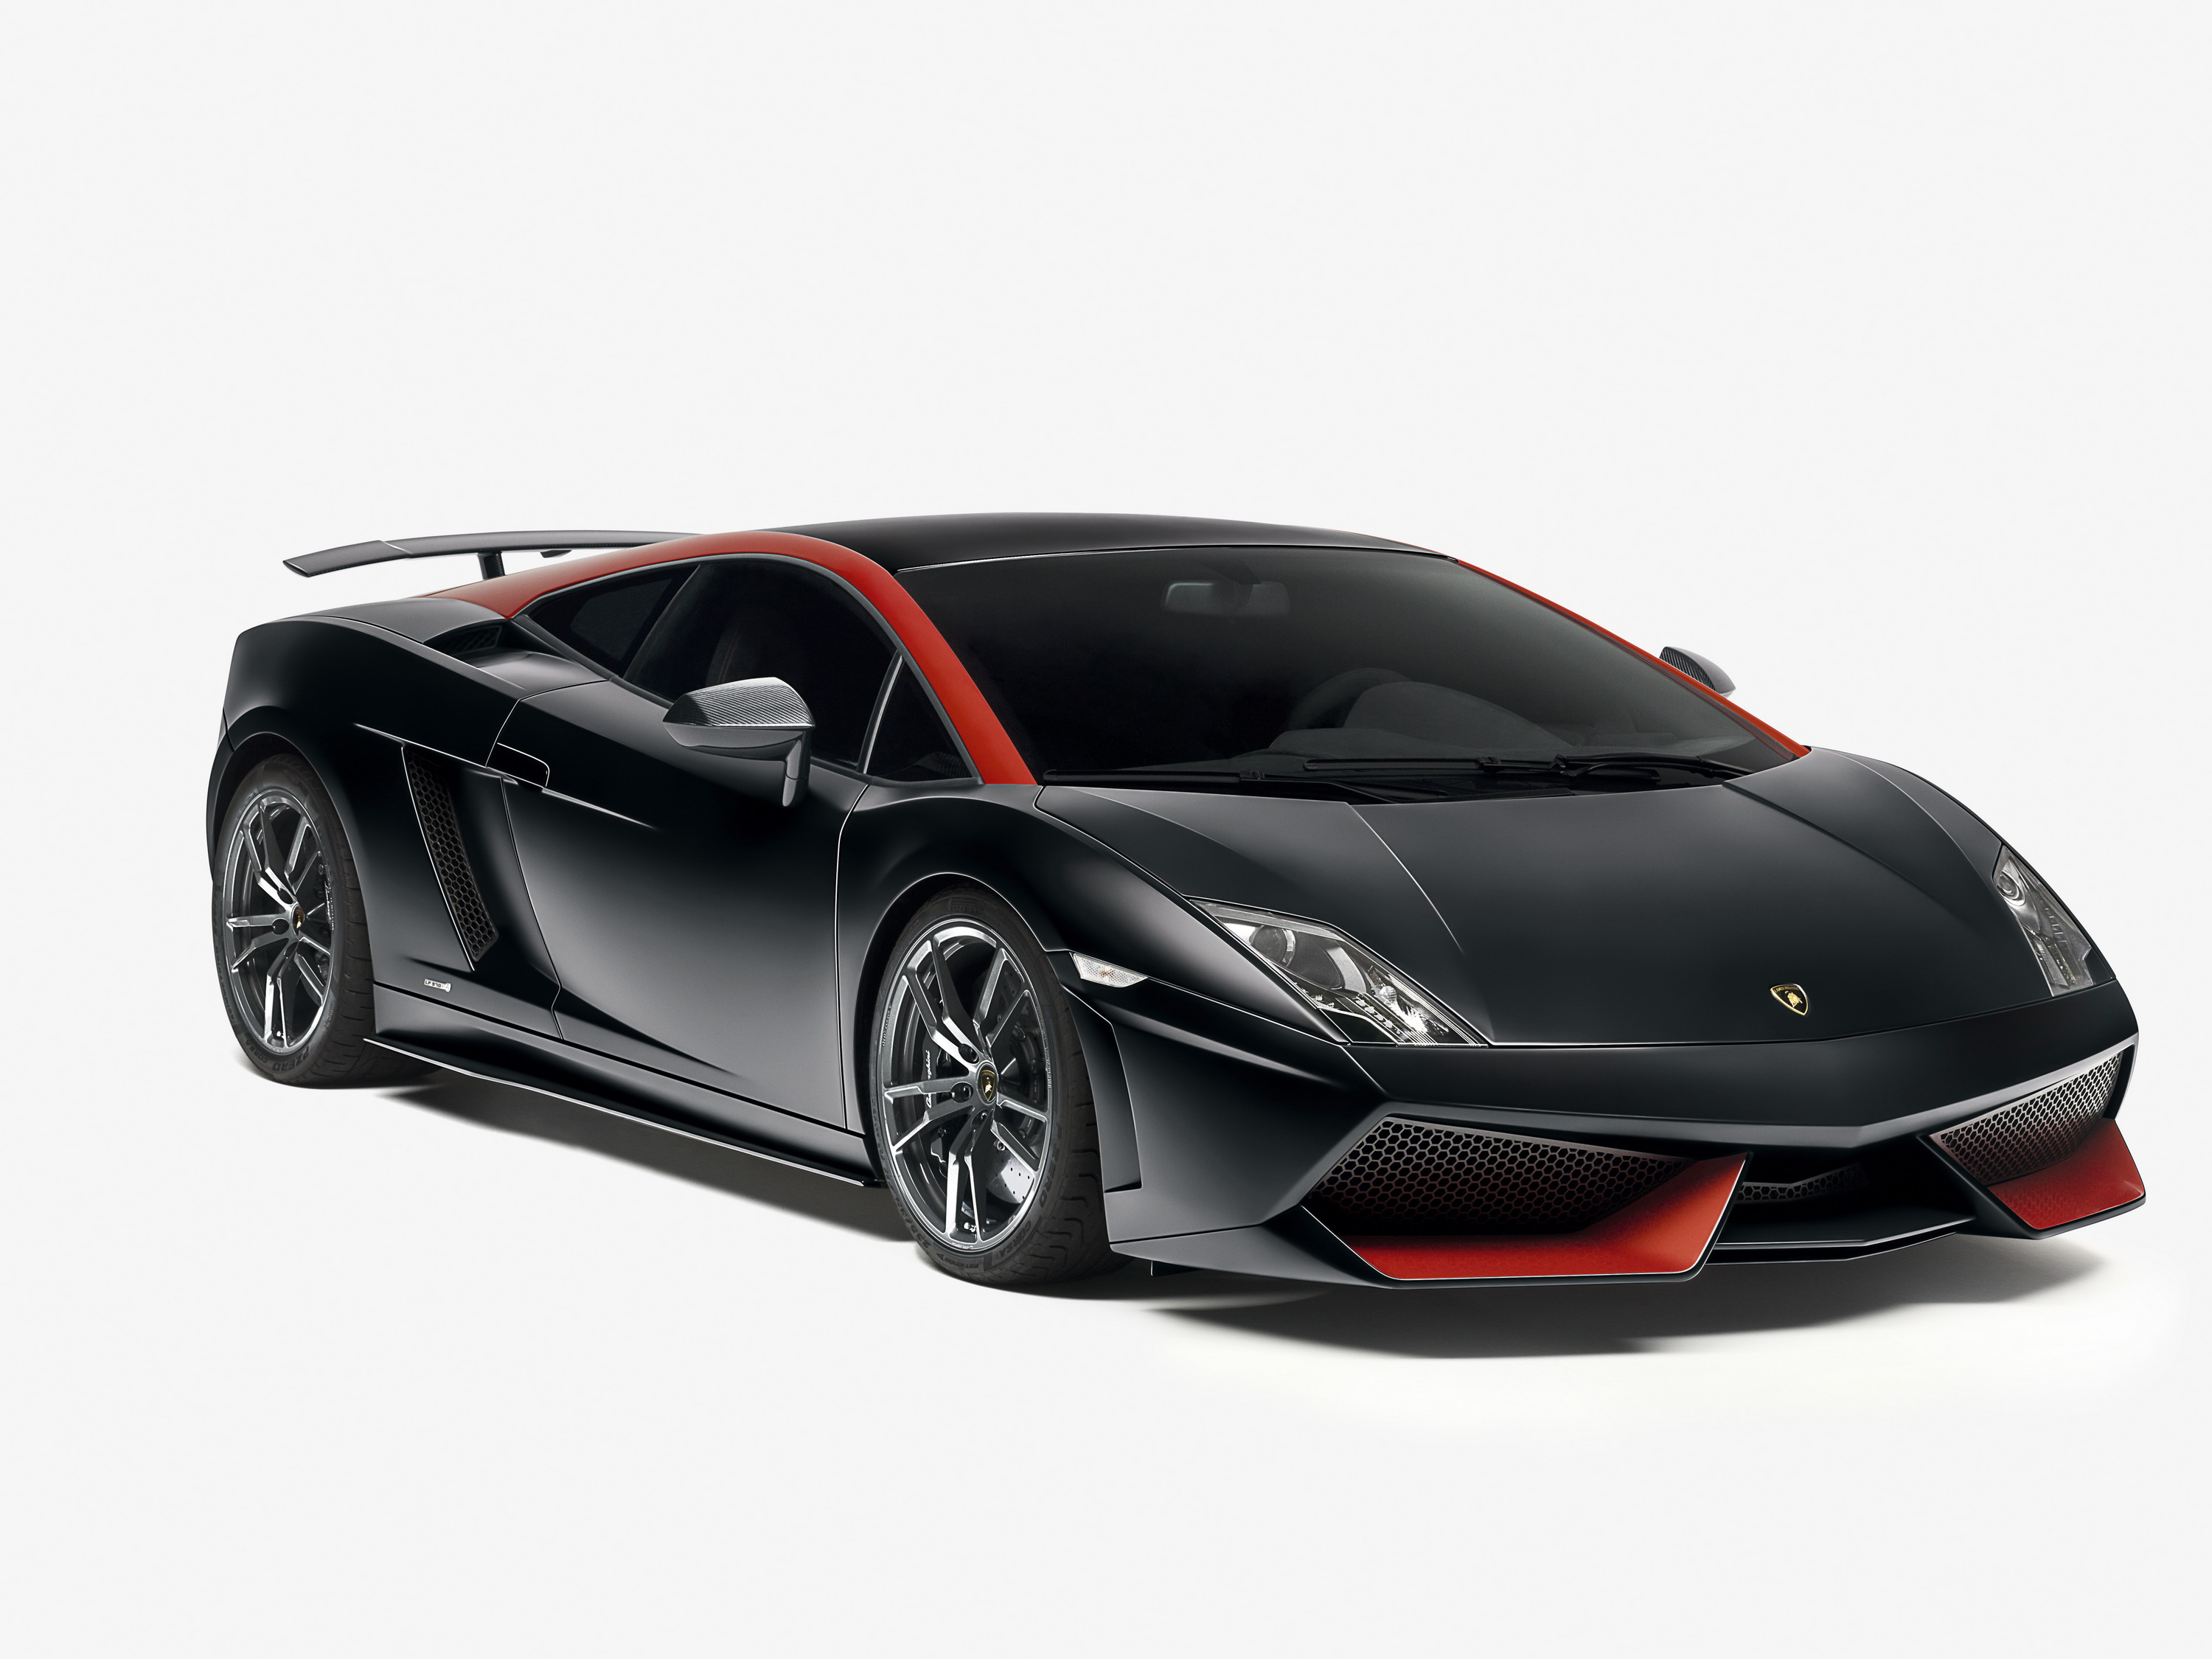 2013 Lamborghini Gallardo Lp 570 4 Edizione Tecnica Top Speed